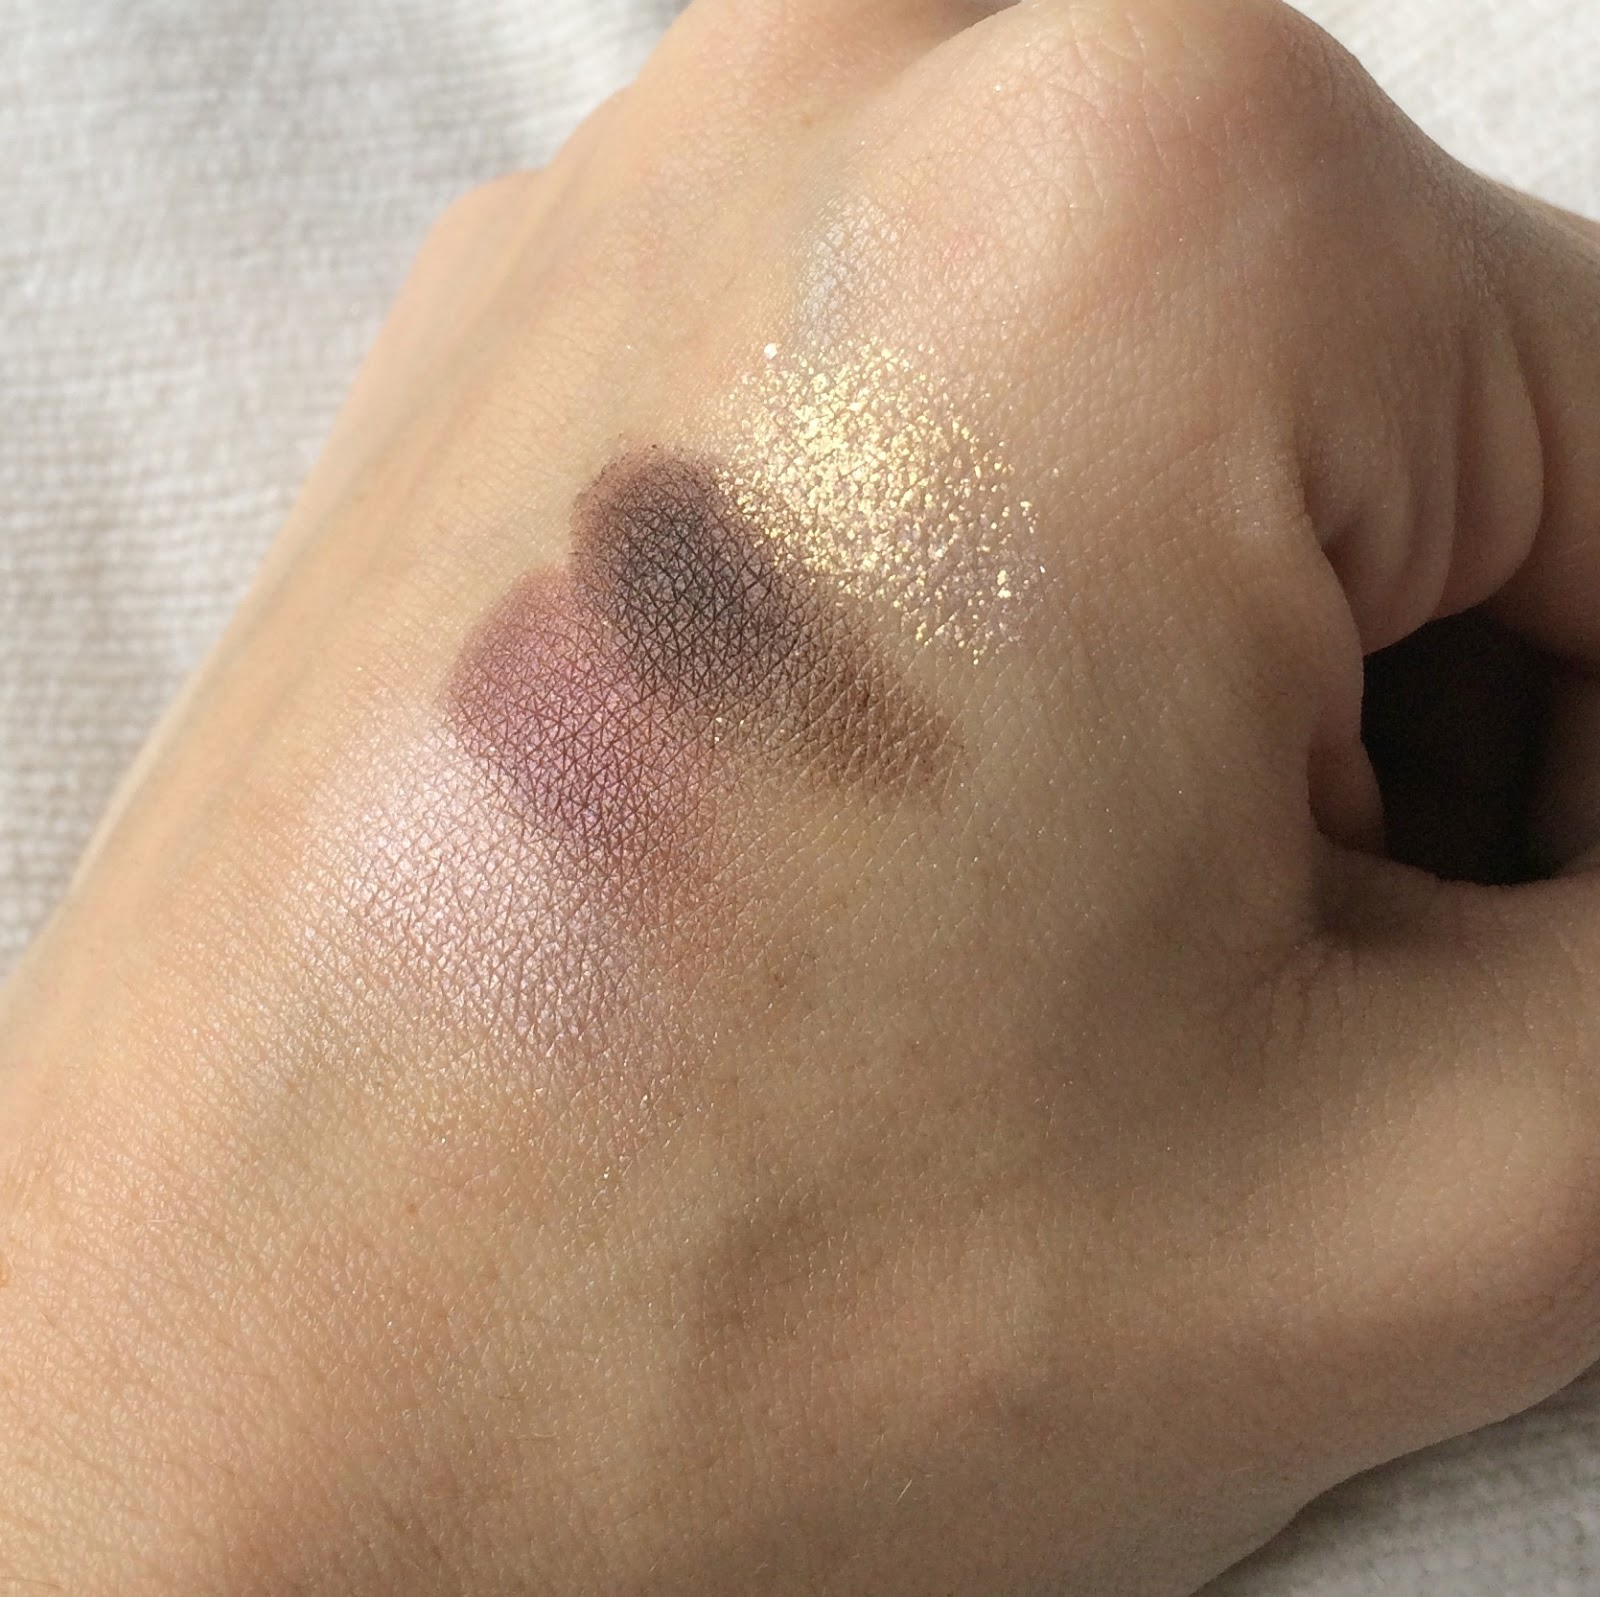 Bourjois-Quad-Smoky-Stories-eyeshadow-over-rose-swatch